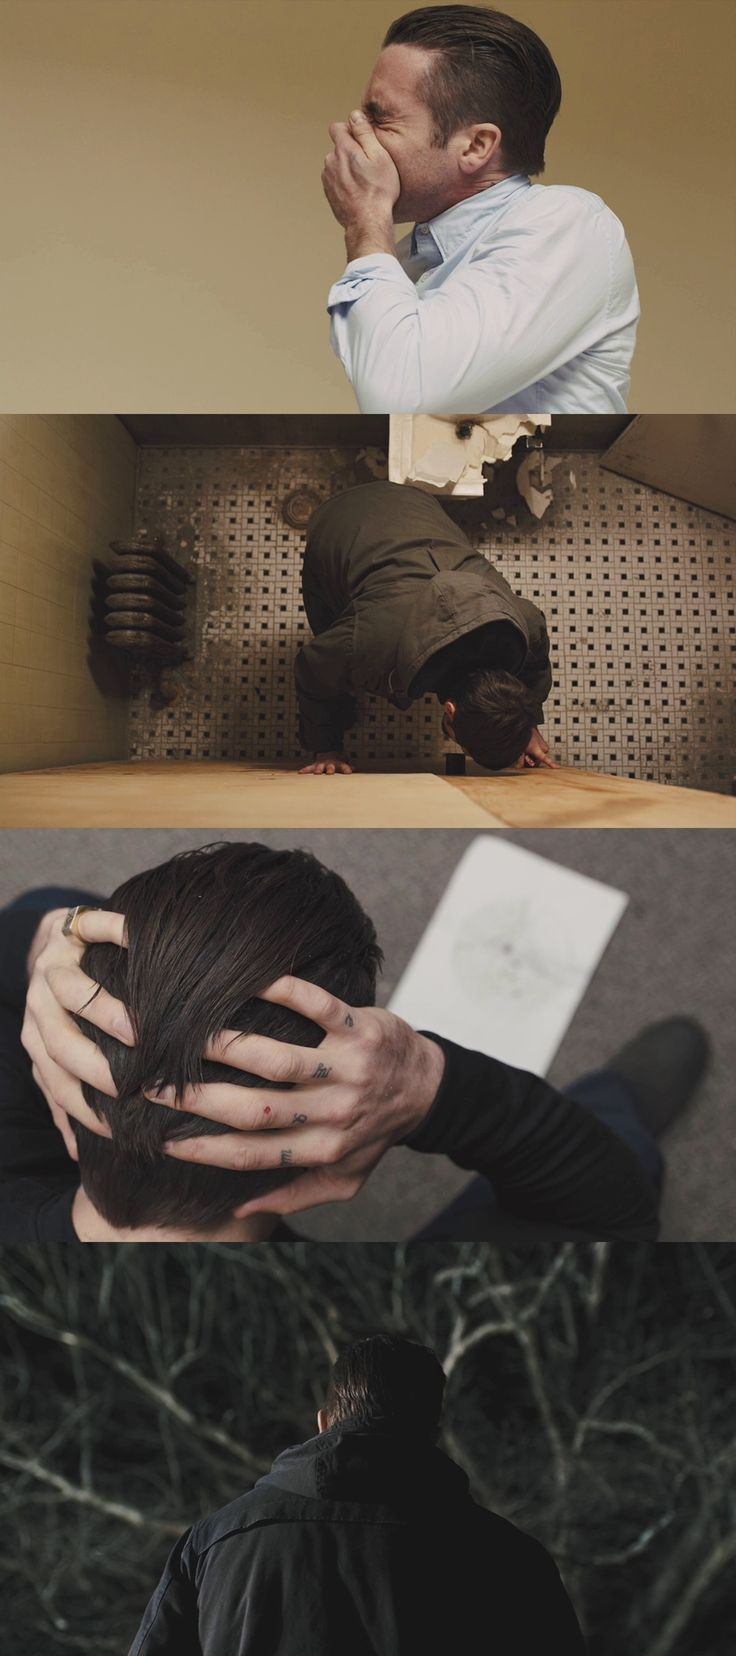 Prisoners (2013) dir. Denis Villeneuve. Cinematographer: Roger Deakins. A great example of the different ways to shoot a character, each shot communicating a different meaning.